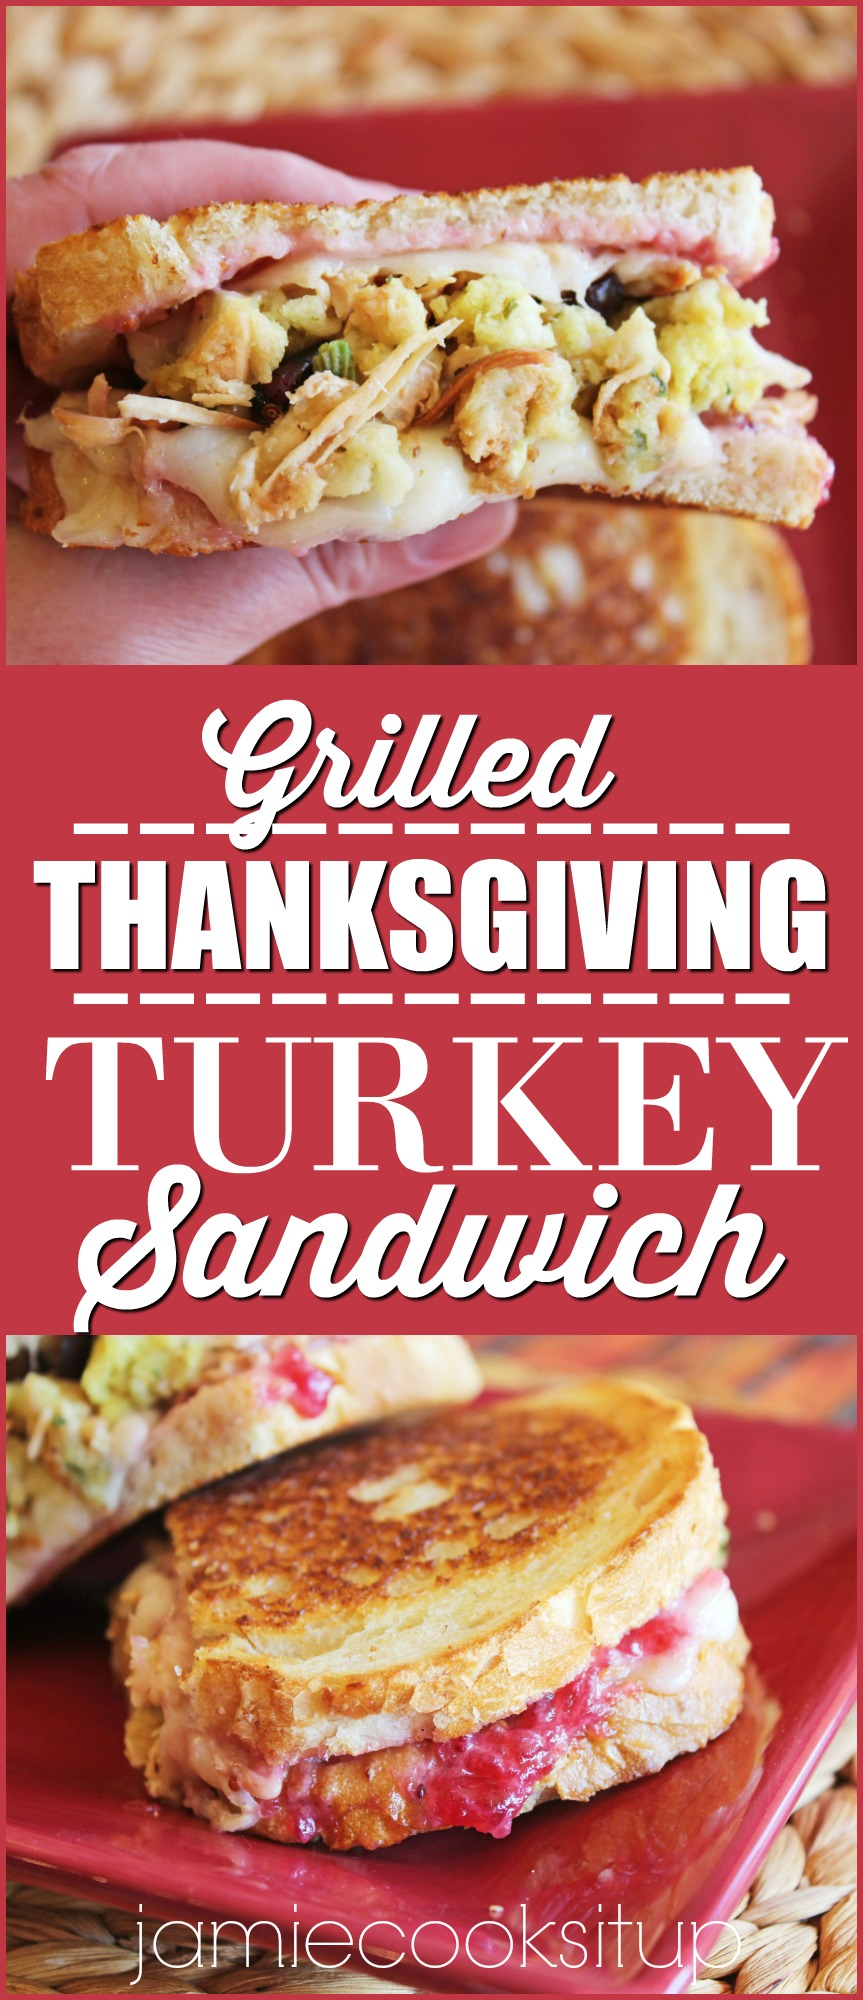 grilled-thanksgiving-turkey-sandwich-from-jamie-cooks-it-up